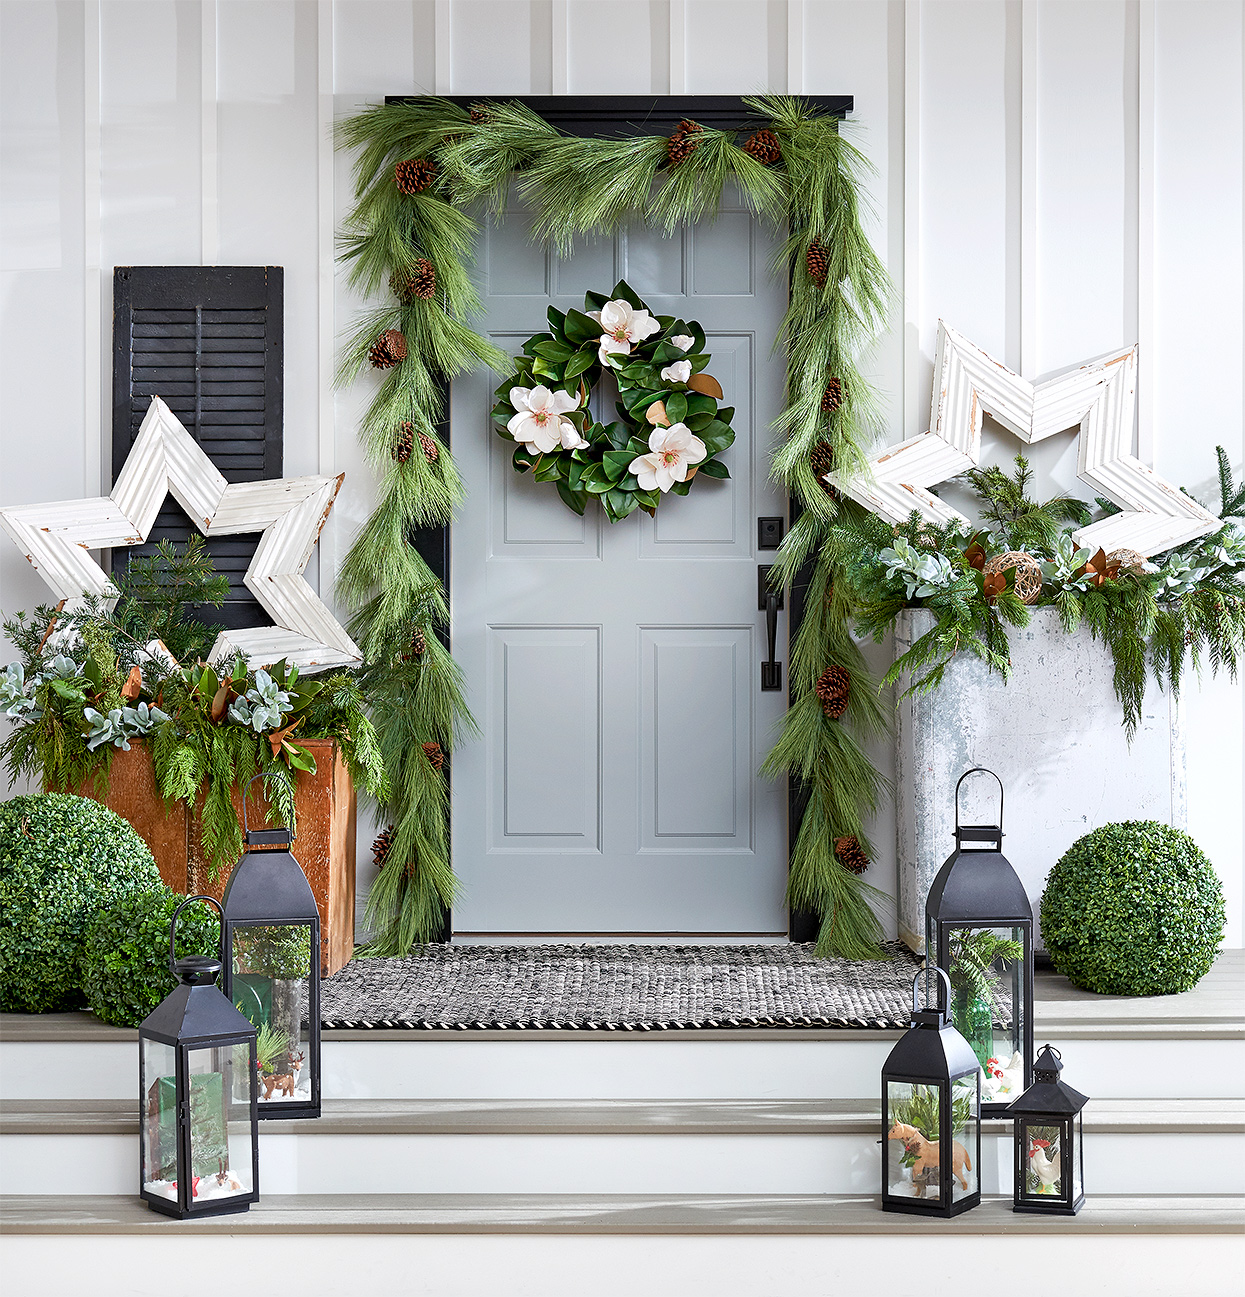 Christmas decorated porch with star decor, garland and lanterns